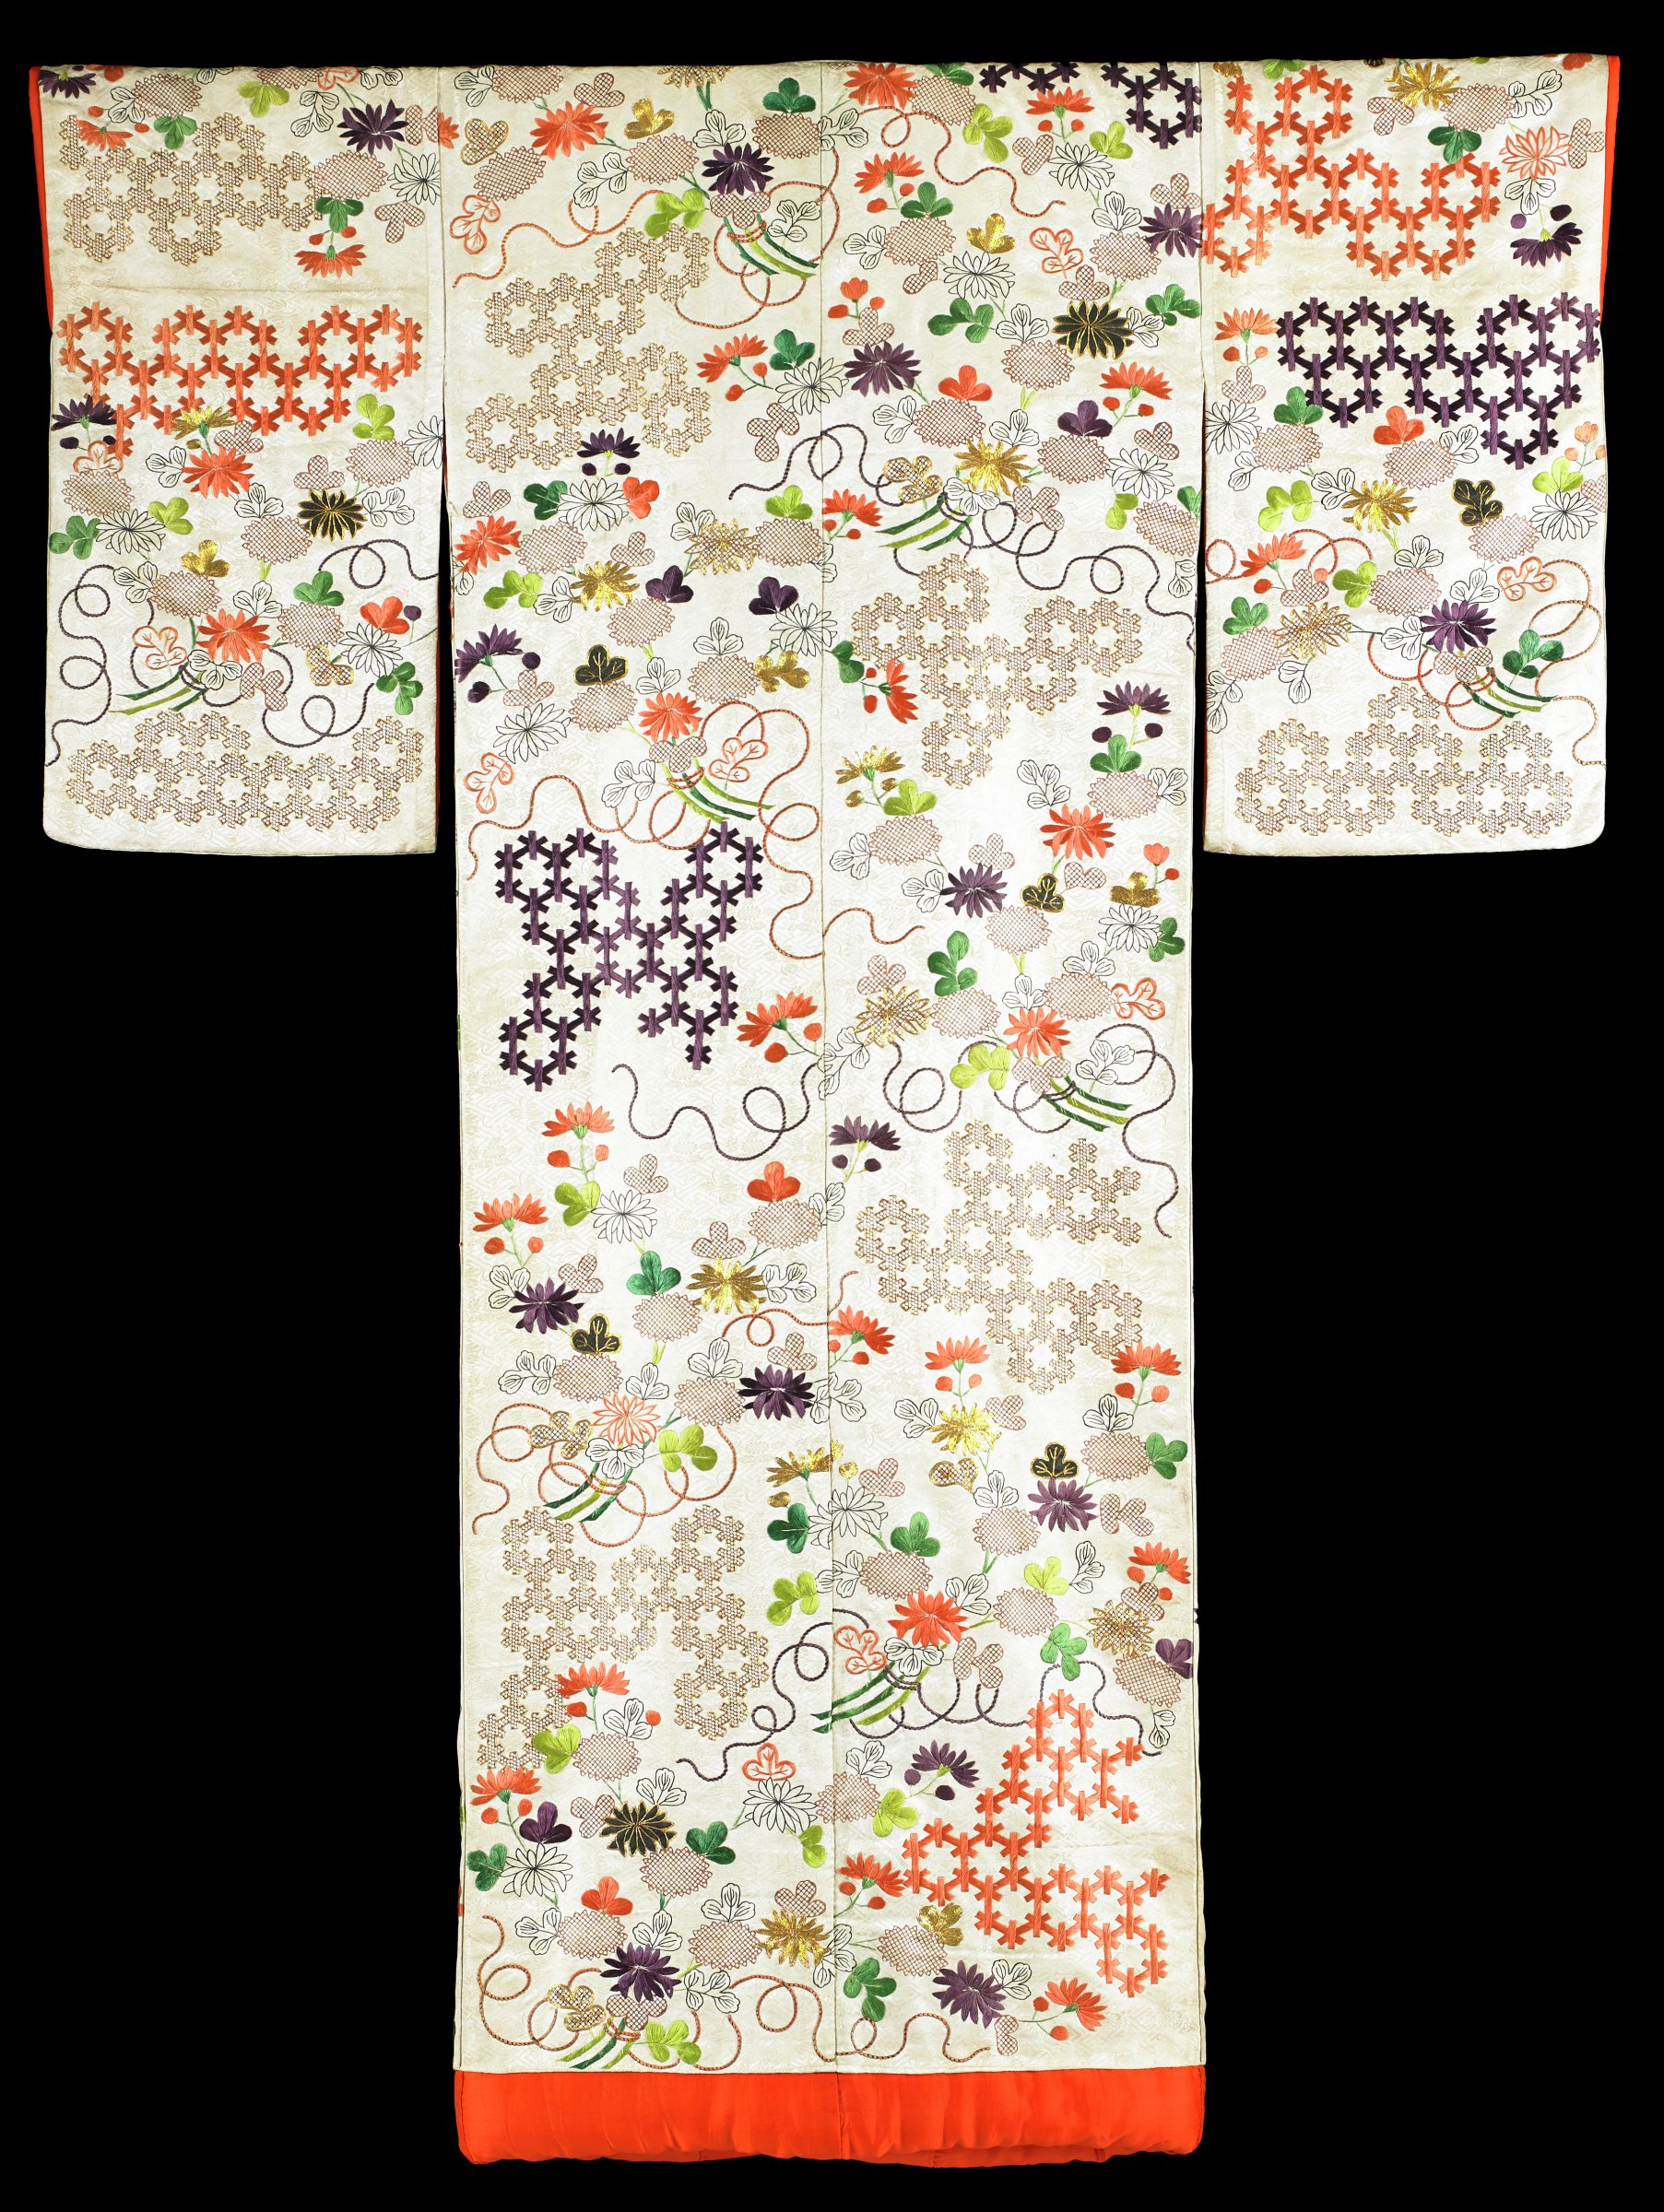 Traditional wedding kimono of cream-colored ground and orange-red lining; designs of floral sprays interspersed among interlocking hexagons; decorations are applied by combination of brush painting, dye-stamping, embroidery and couched gold threads